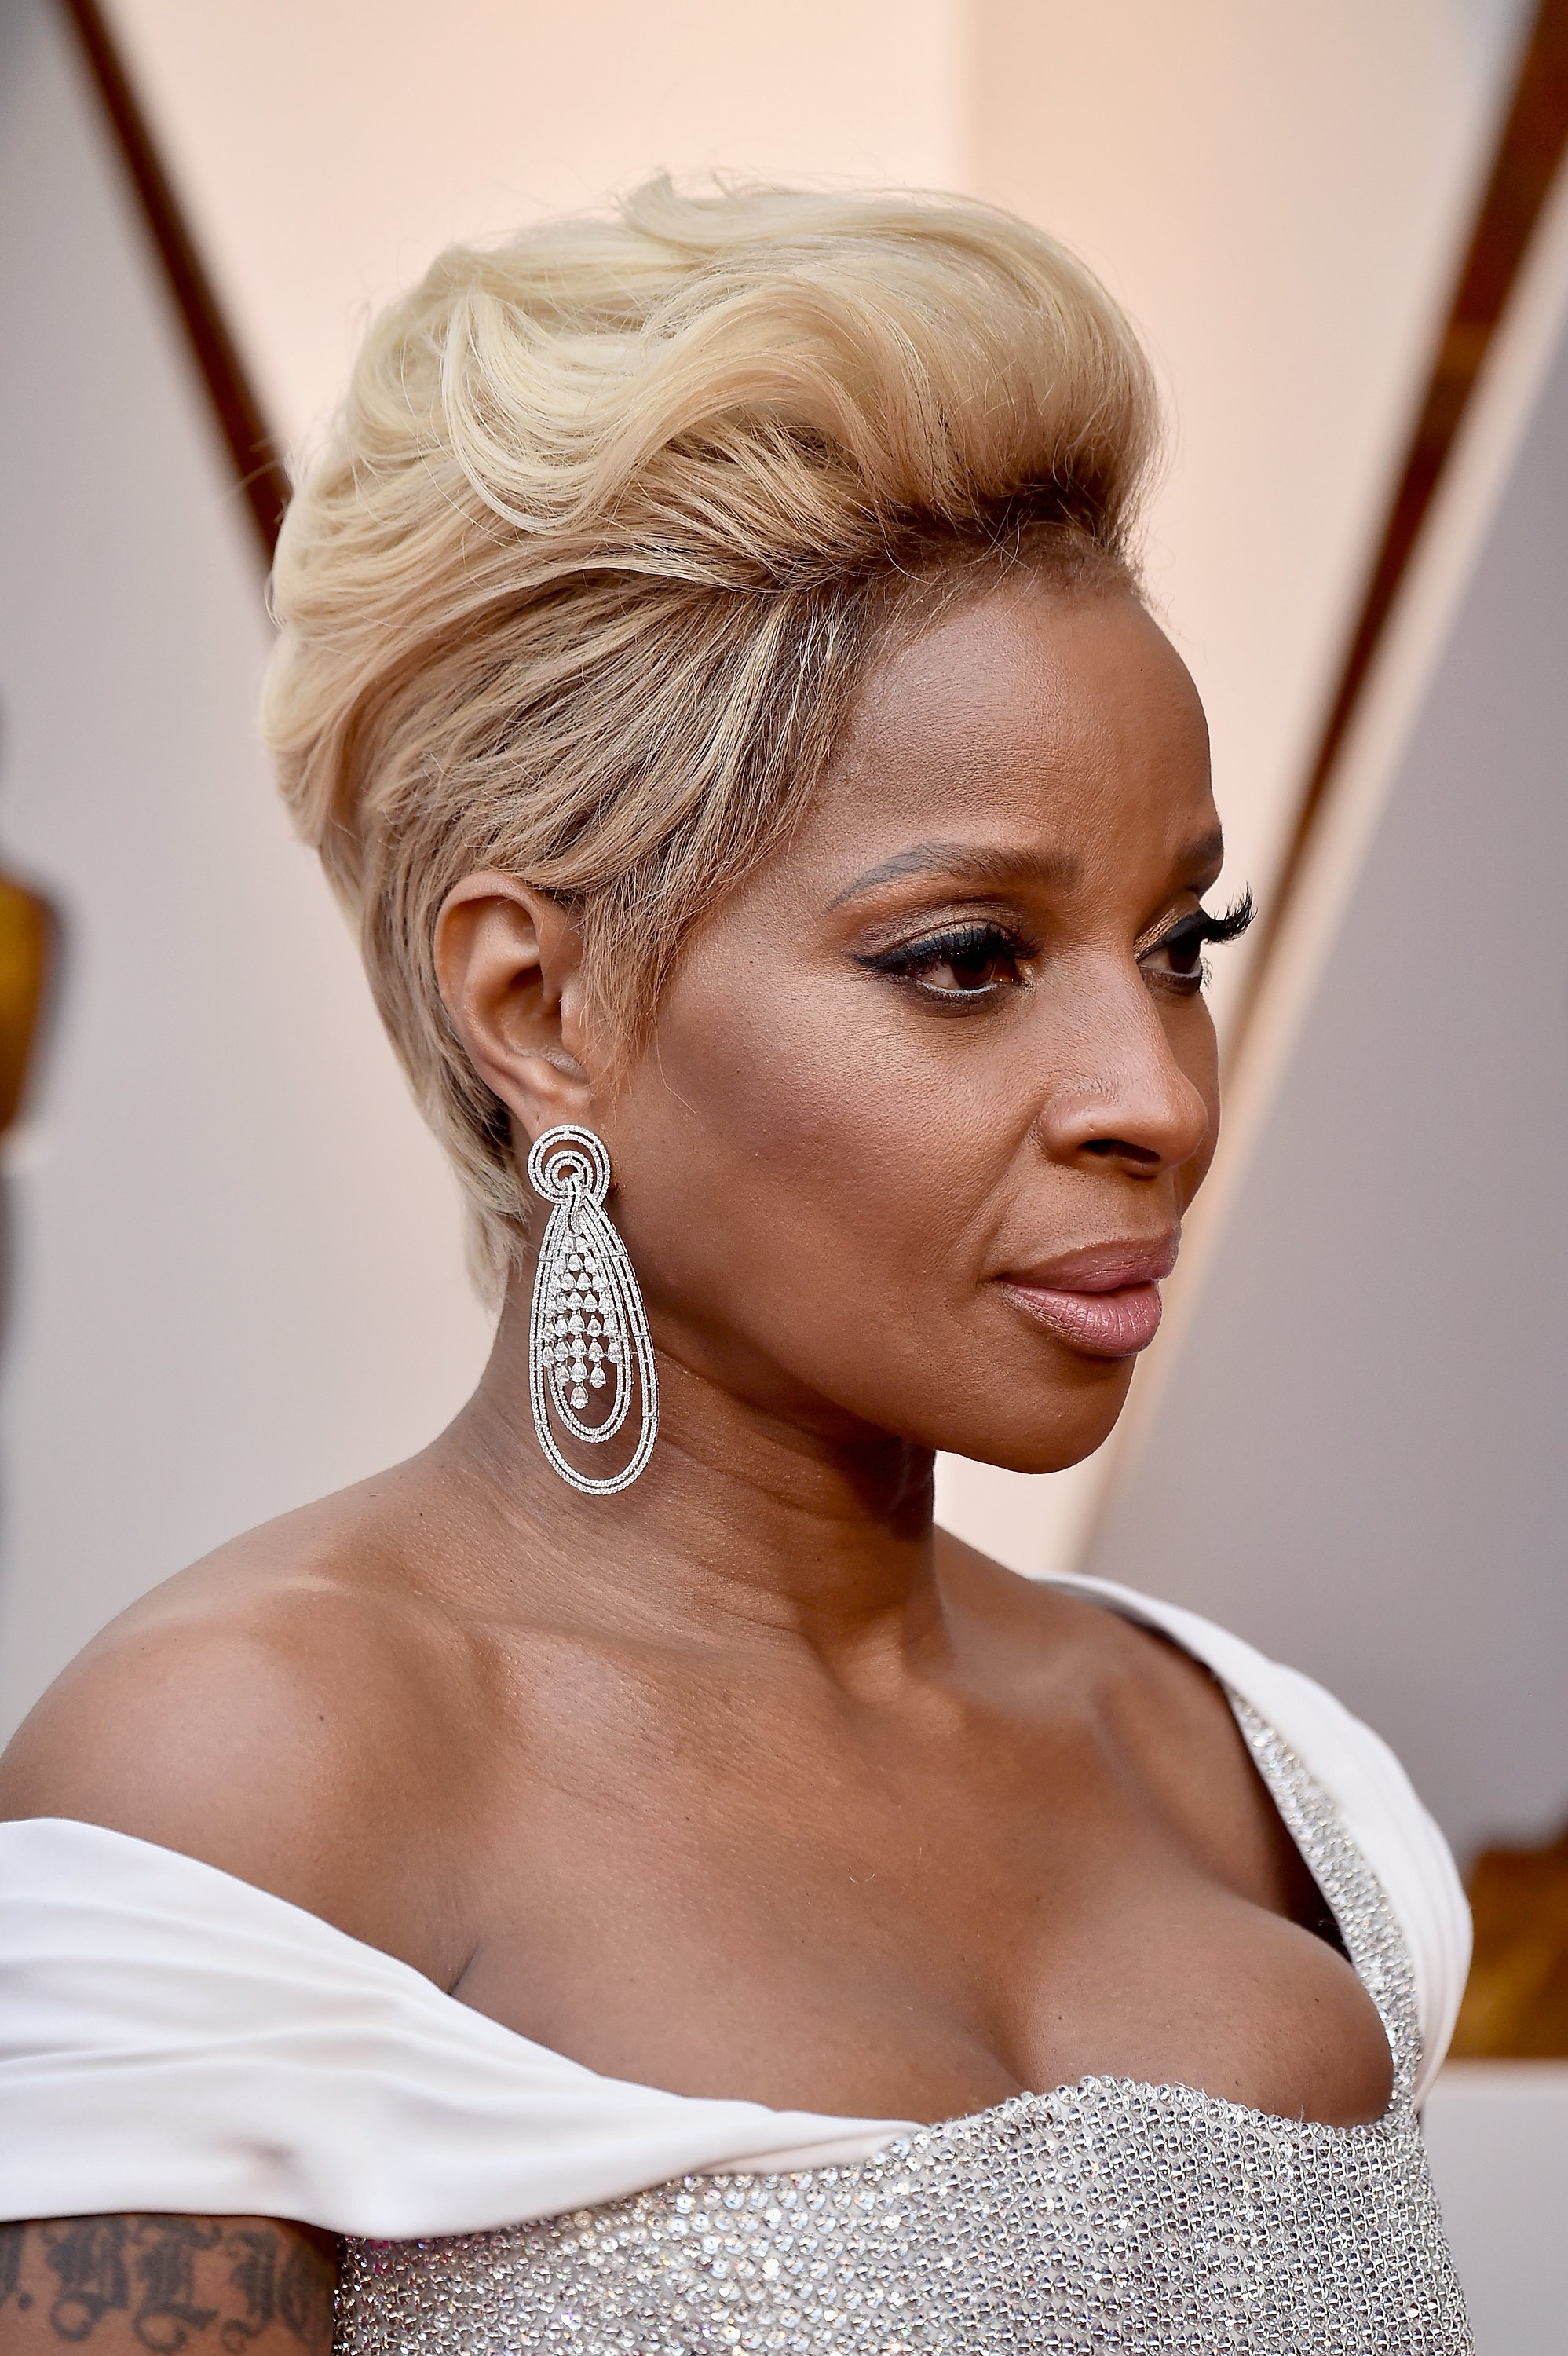 Mary J. Blige attends the 90th Academy Awards in March 2018. | Photo: Getty Images